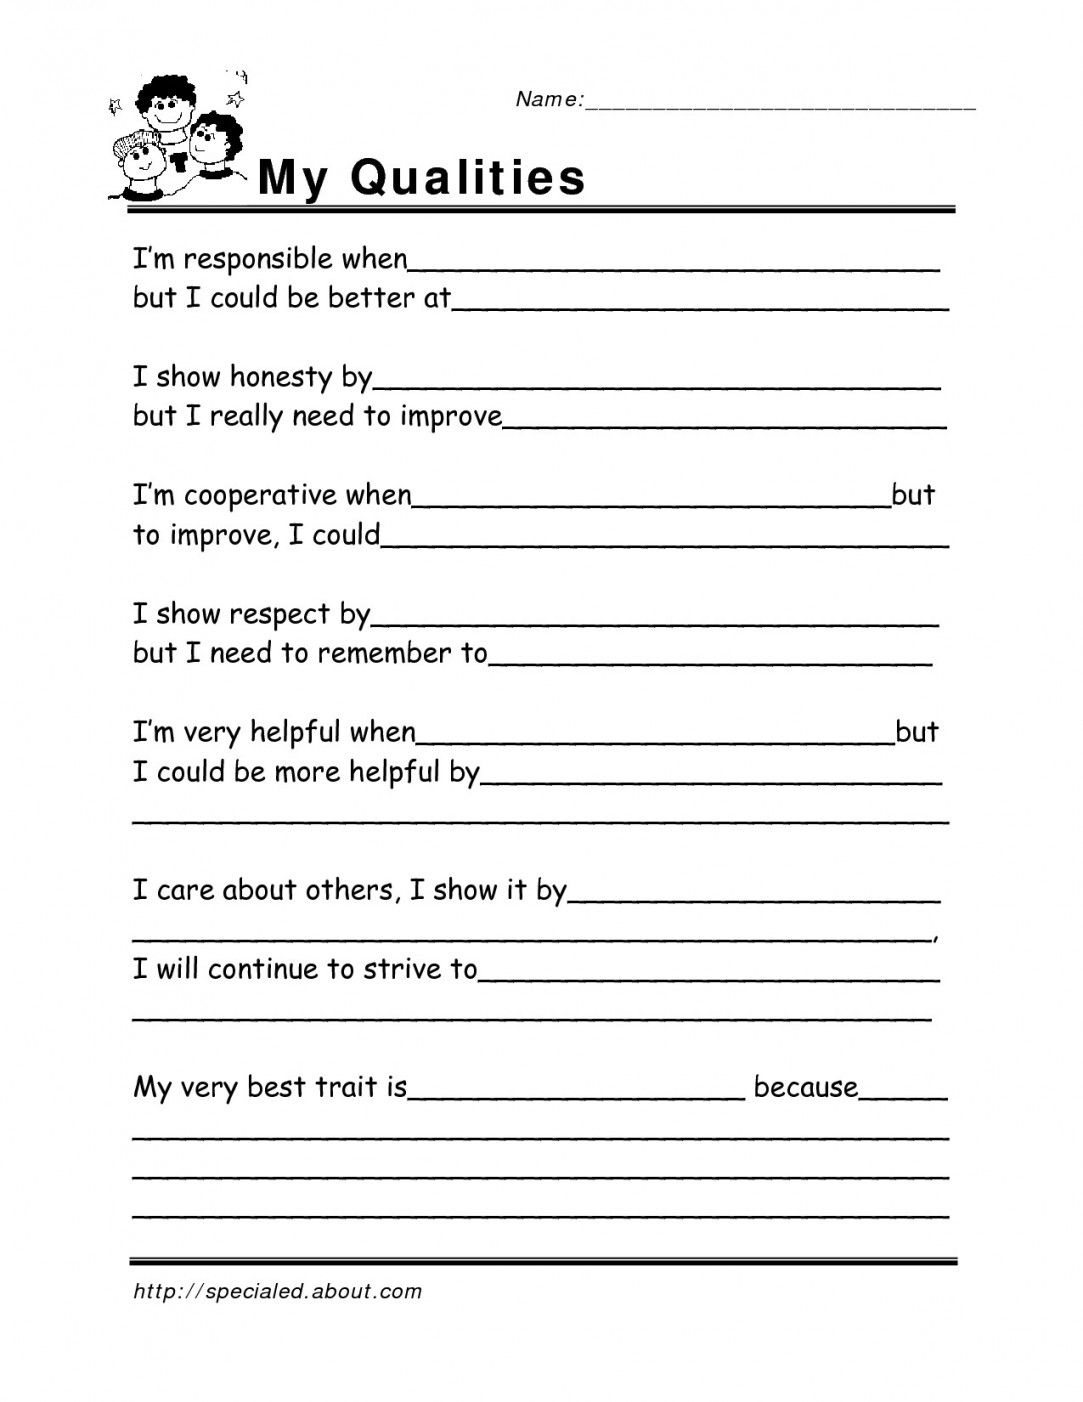 Free Printable Life Skills Worksheets For Adults | Lostranquillos | Printable Worksheets For Adults